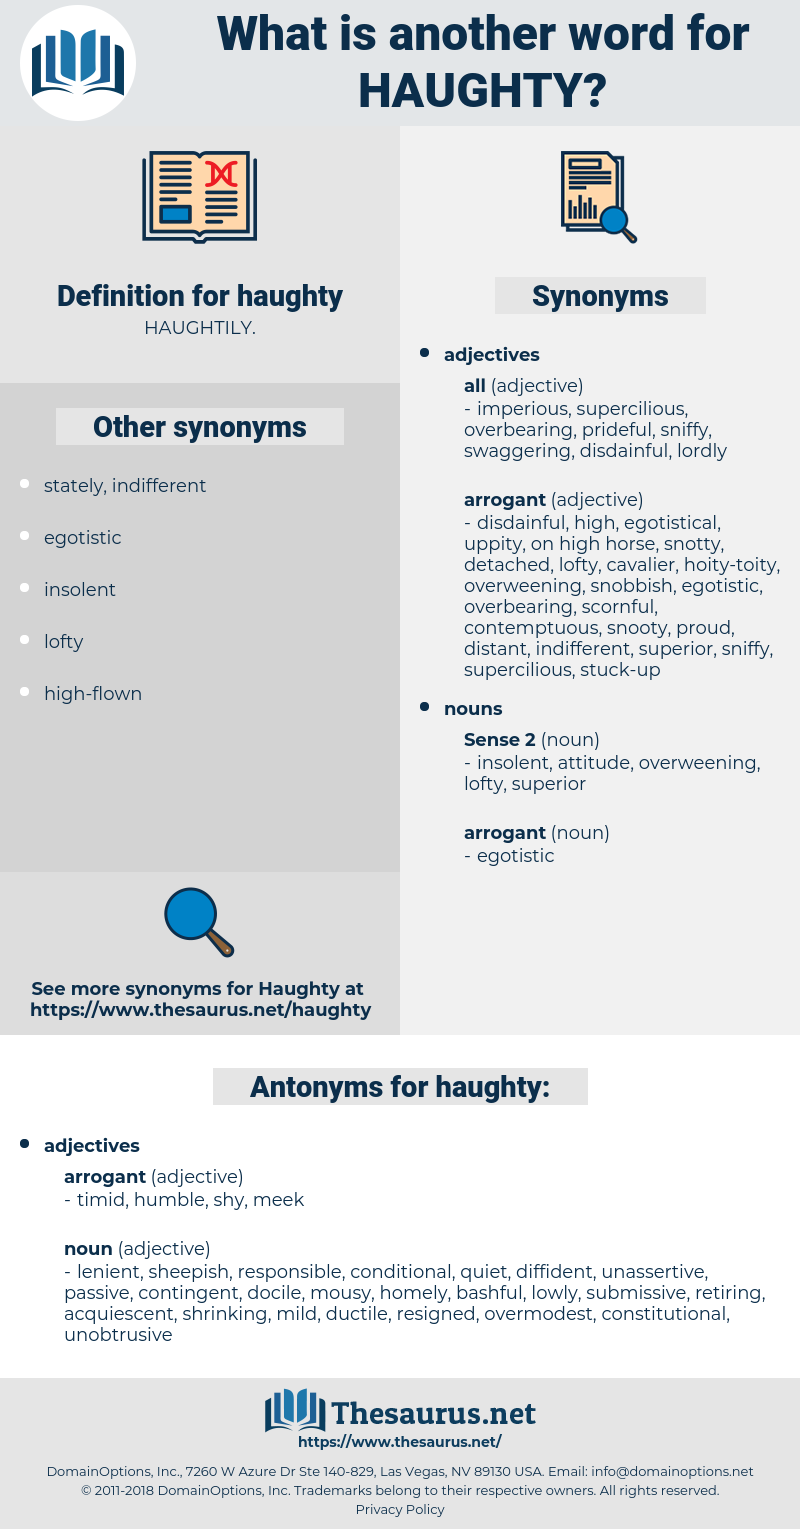 haughty, synonym haughty, another word for haughty, words like haughty, thesaurus haughty